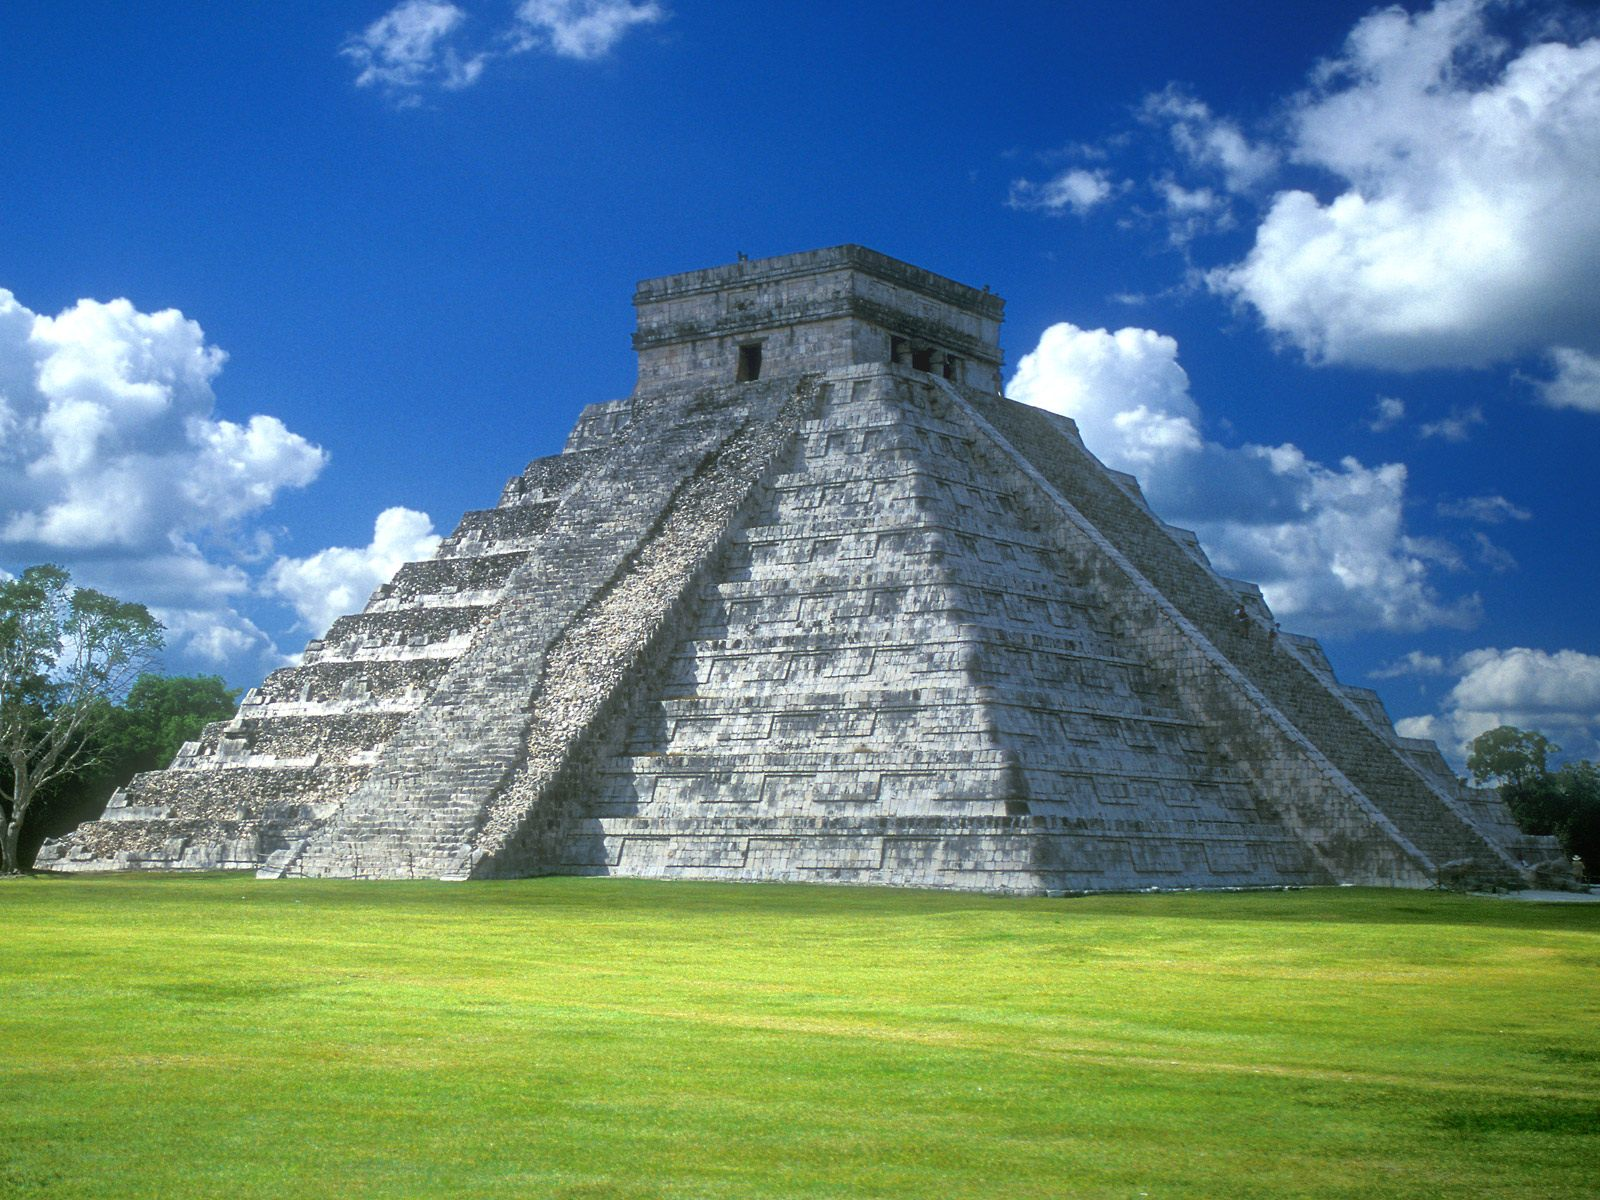 Pyramid of Mexico